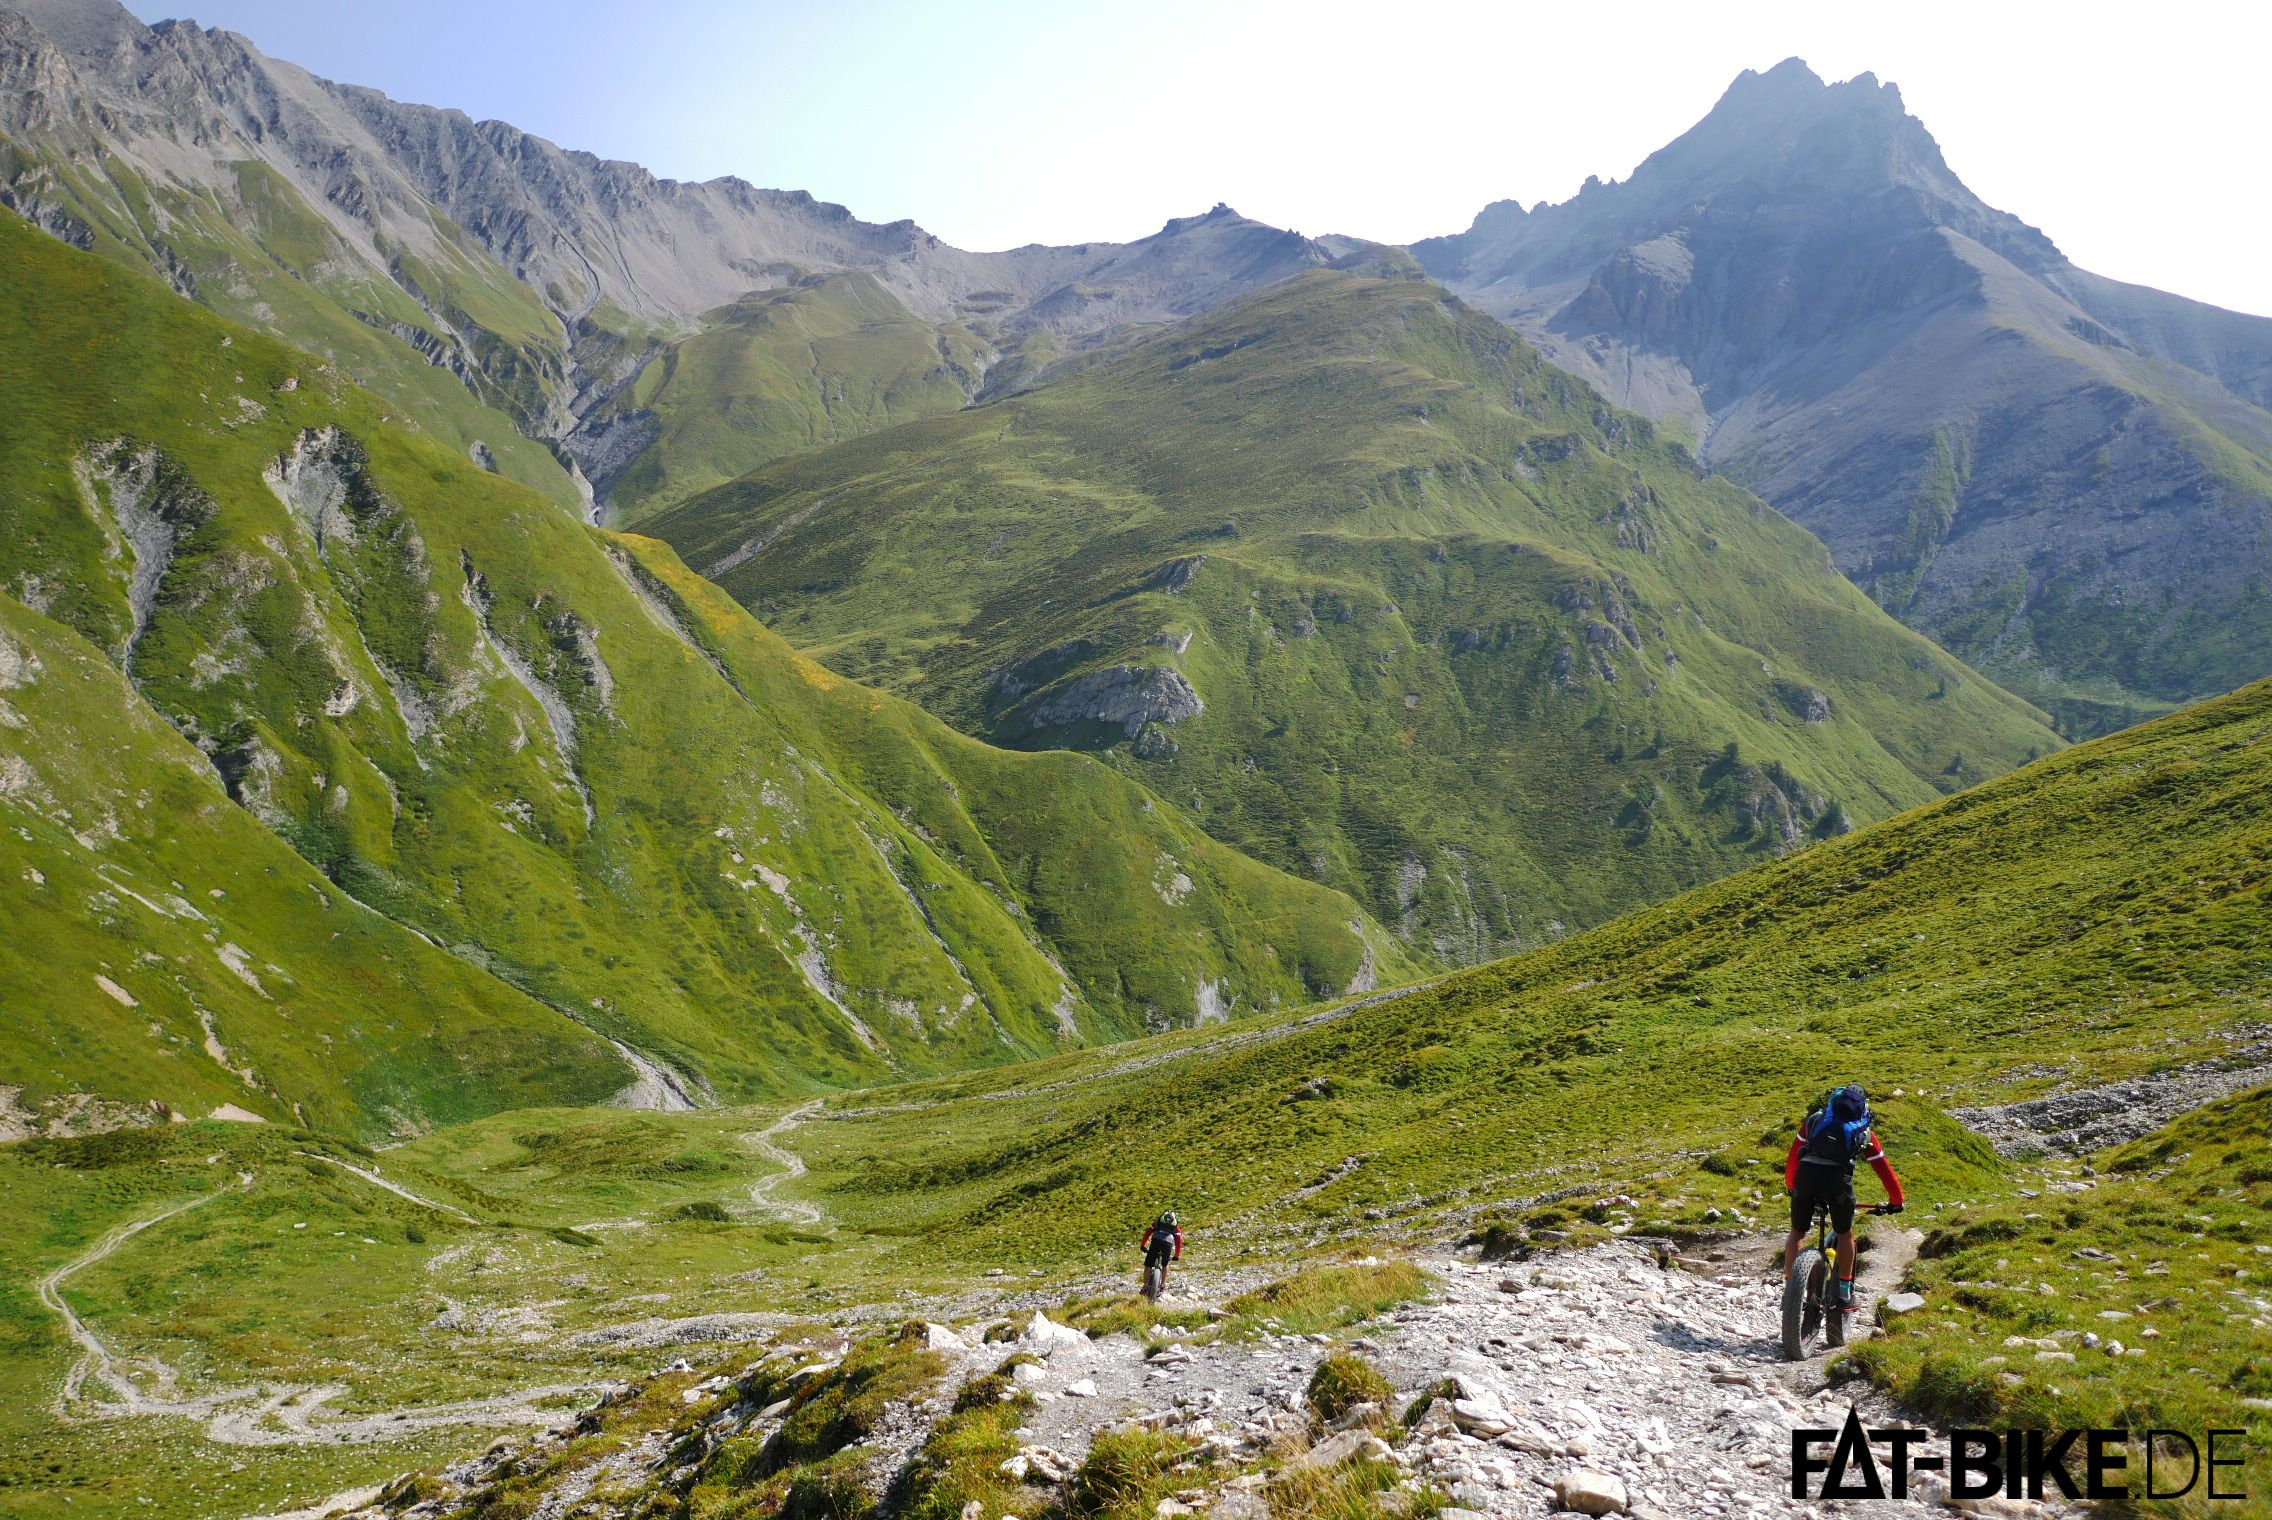 Packender Trail vom Fimberpass hinunter ins Tal